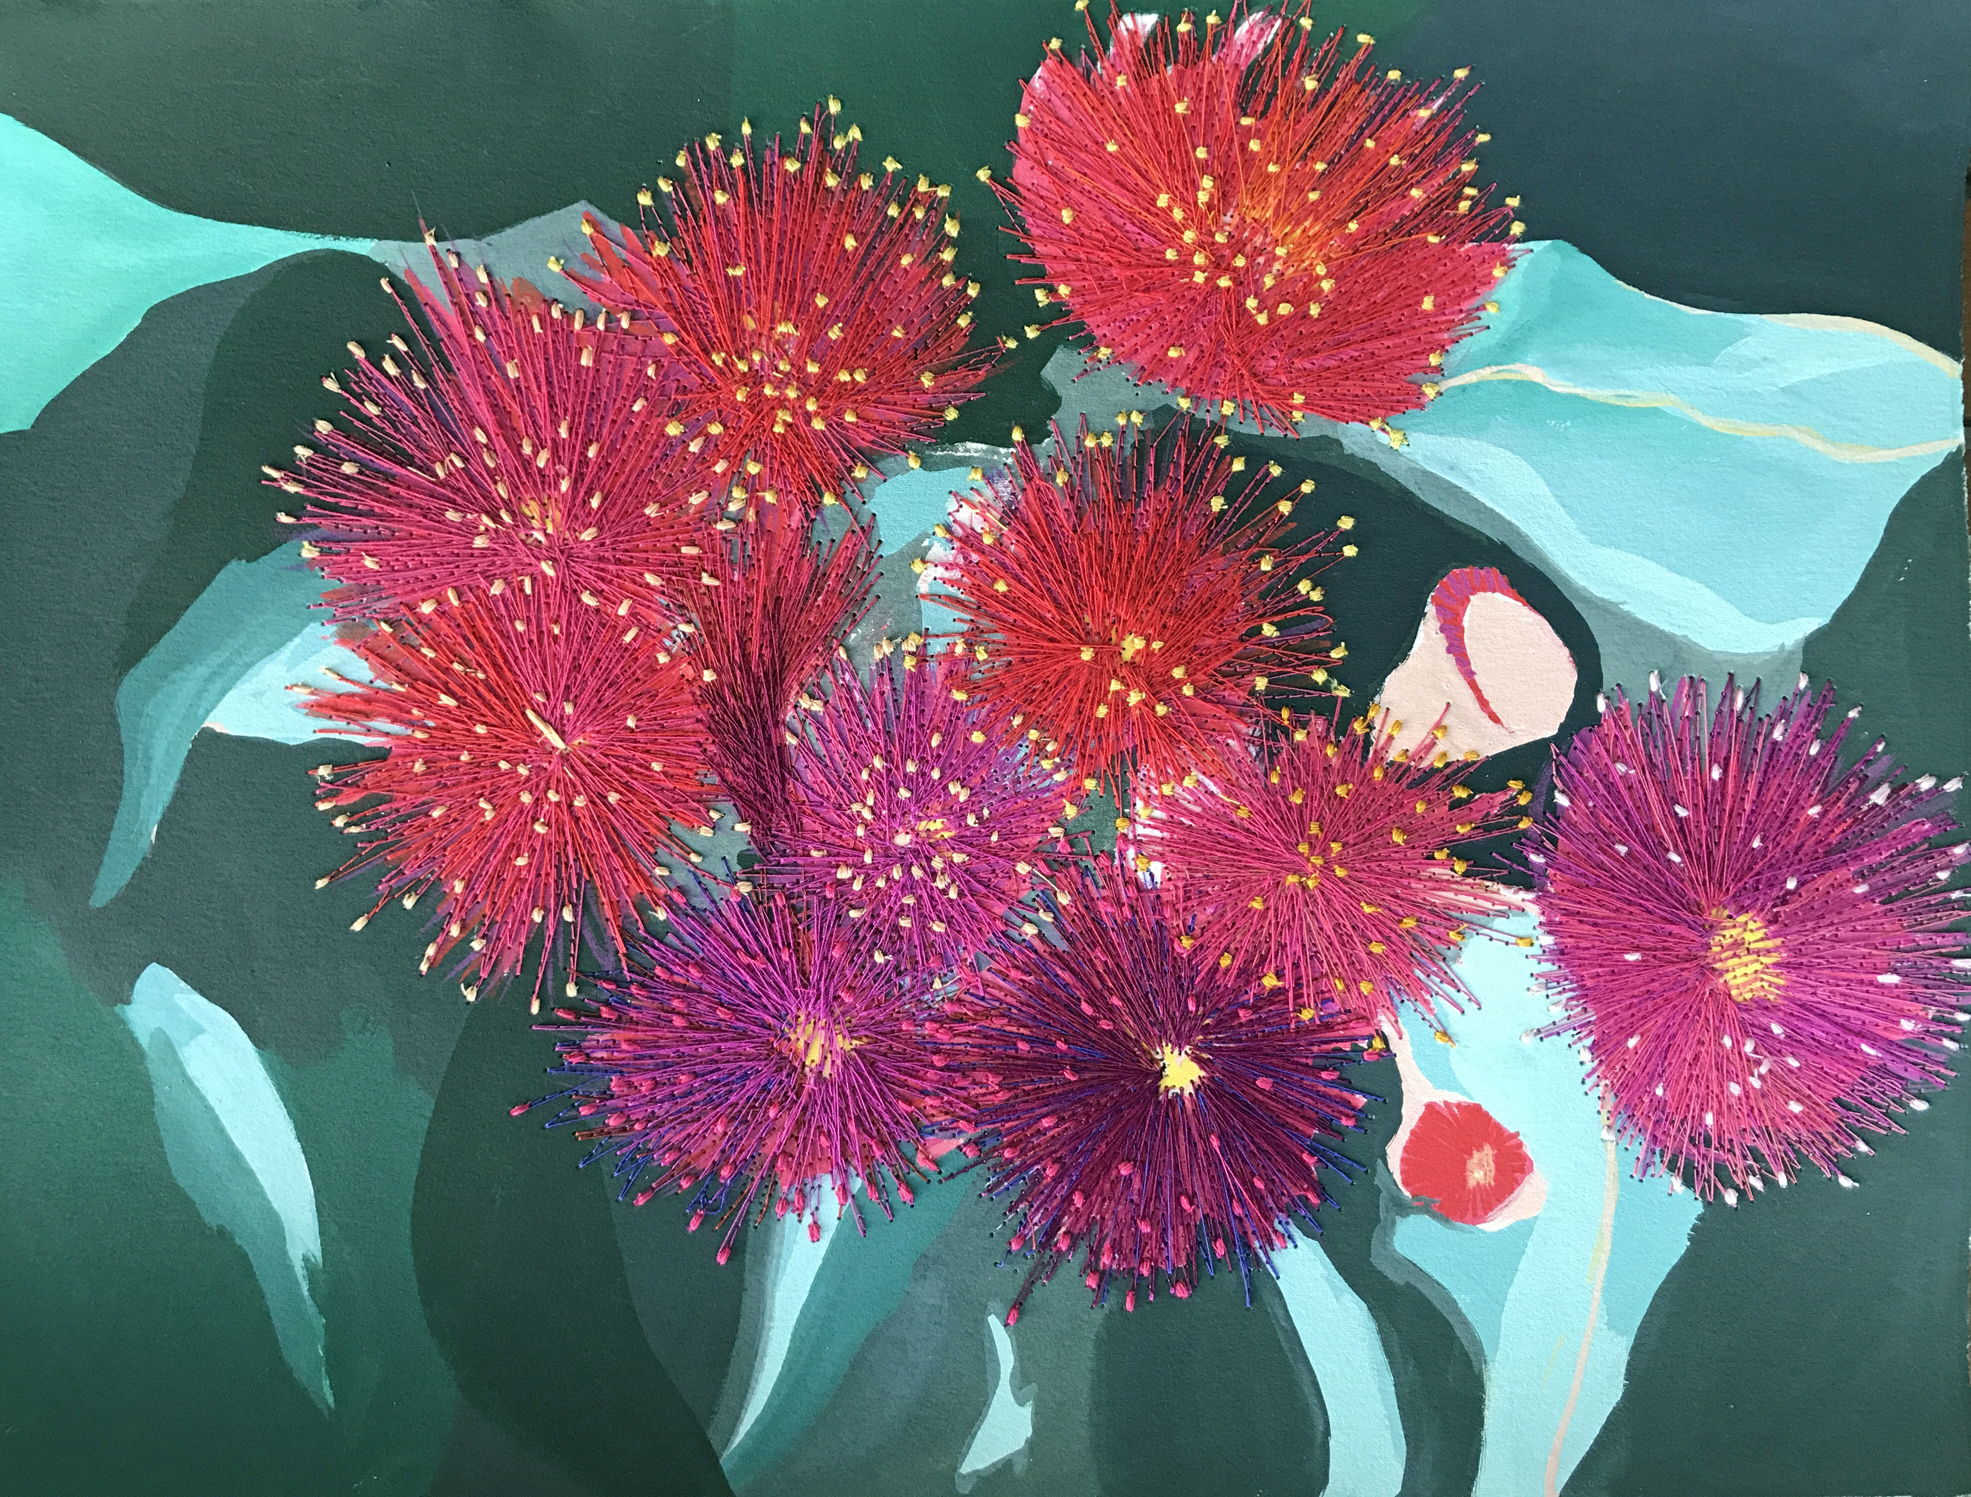 Gum Flowers On Show By Leah Gay (2019)